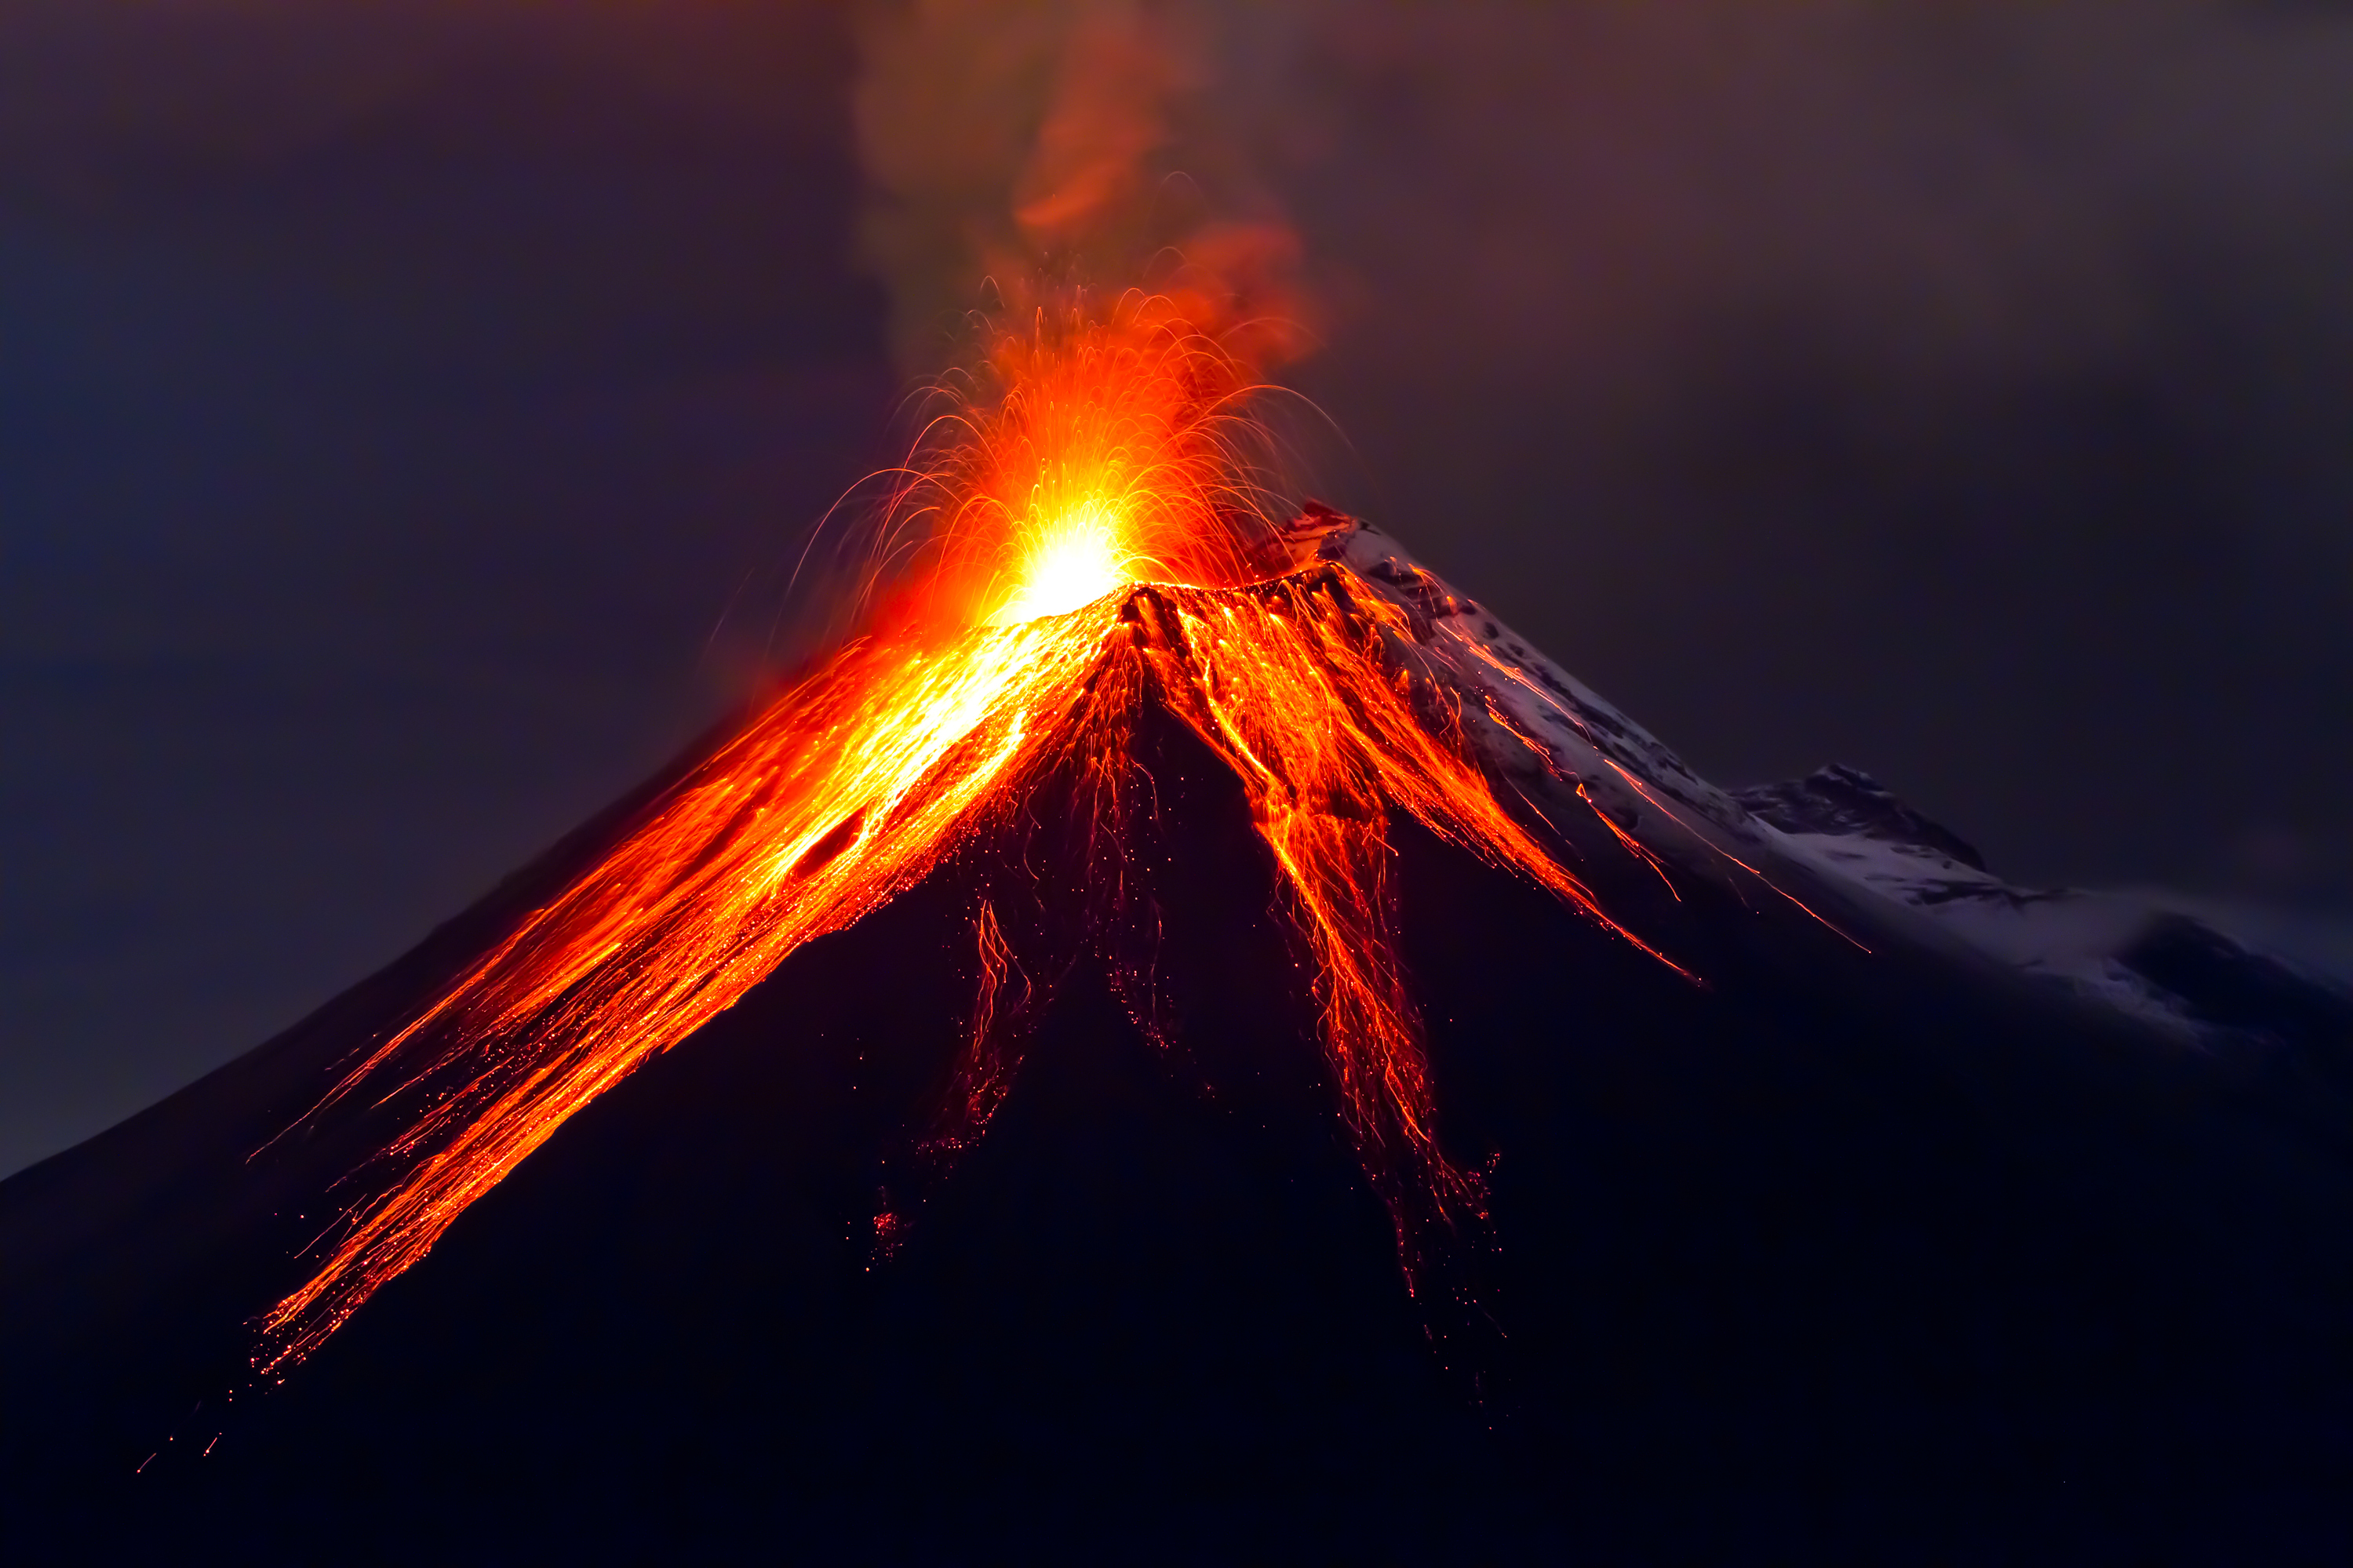 About Volcanoes